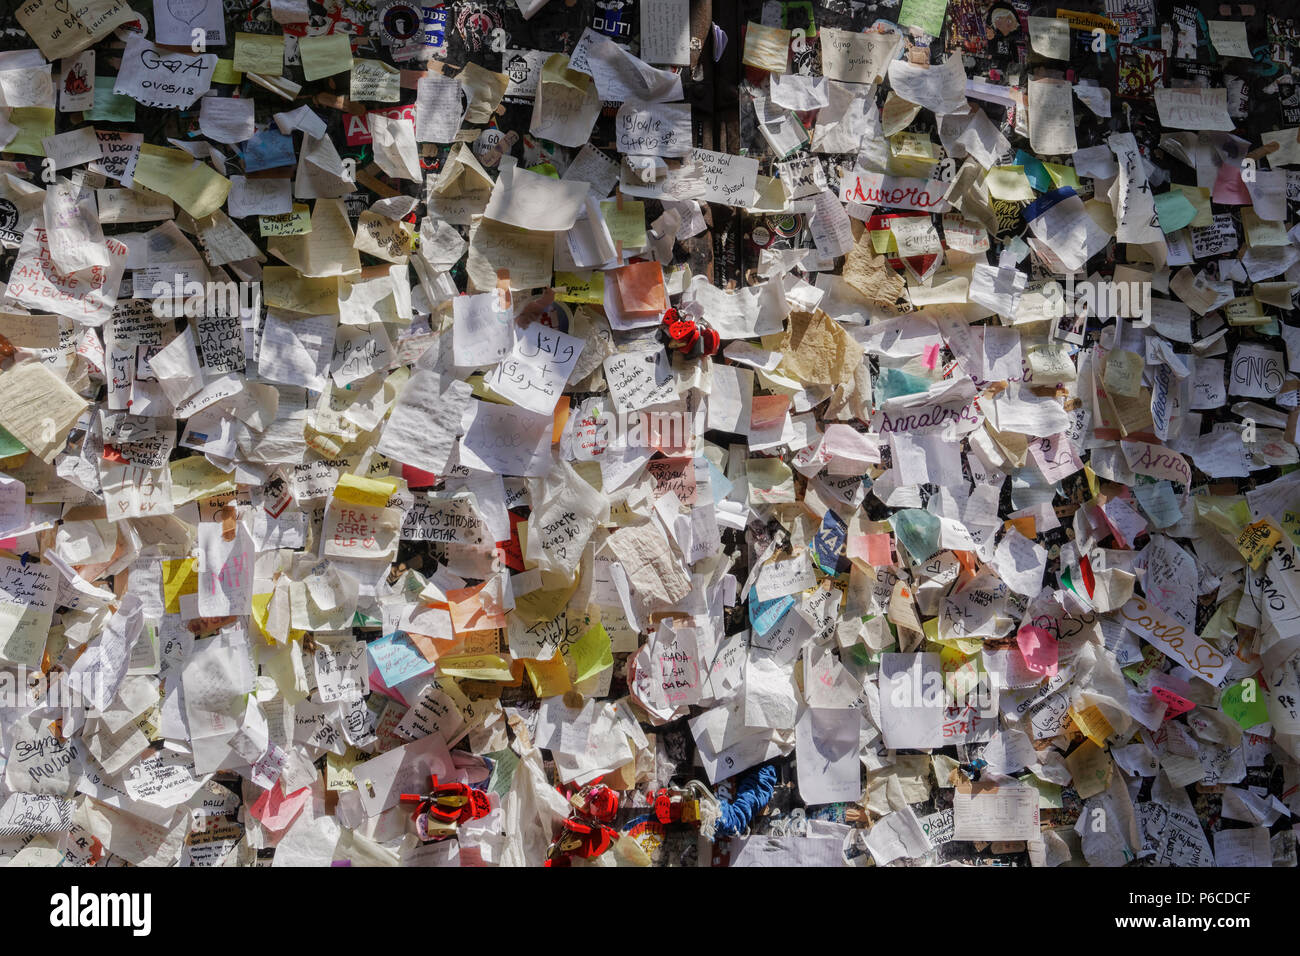 Verona, Italy Casa di Giulieta letters wall. Juliets house courtyard paper notes with attached love messages and locks. Stock Photo